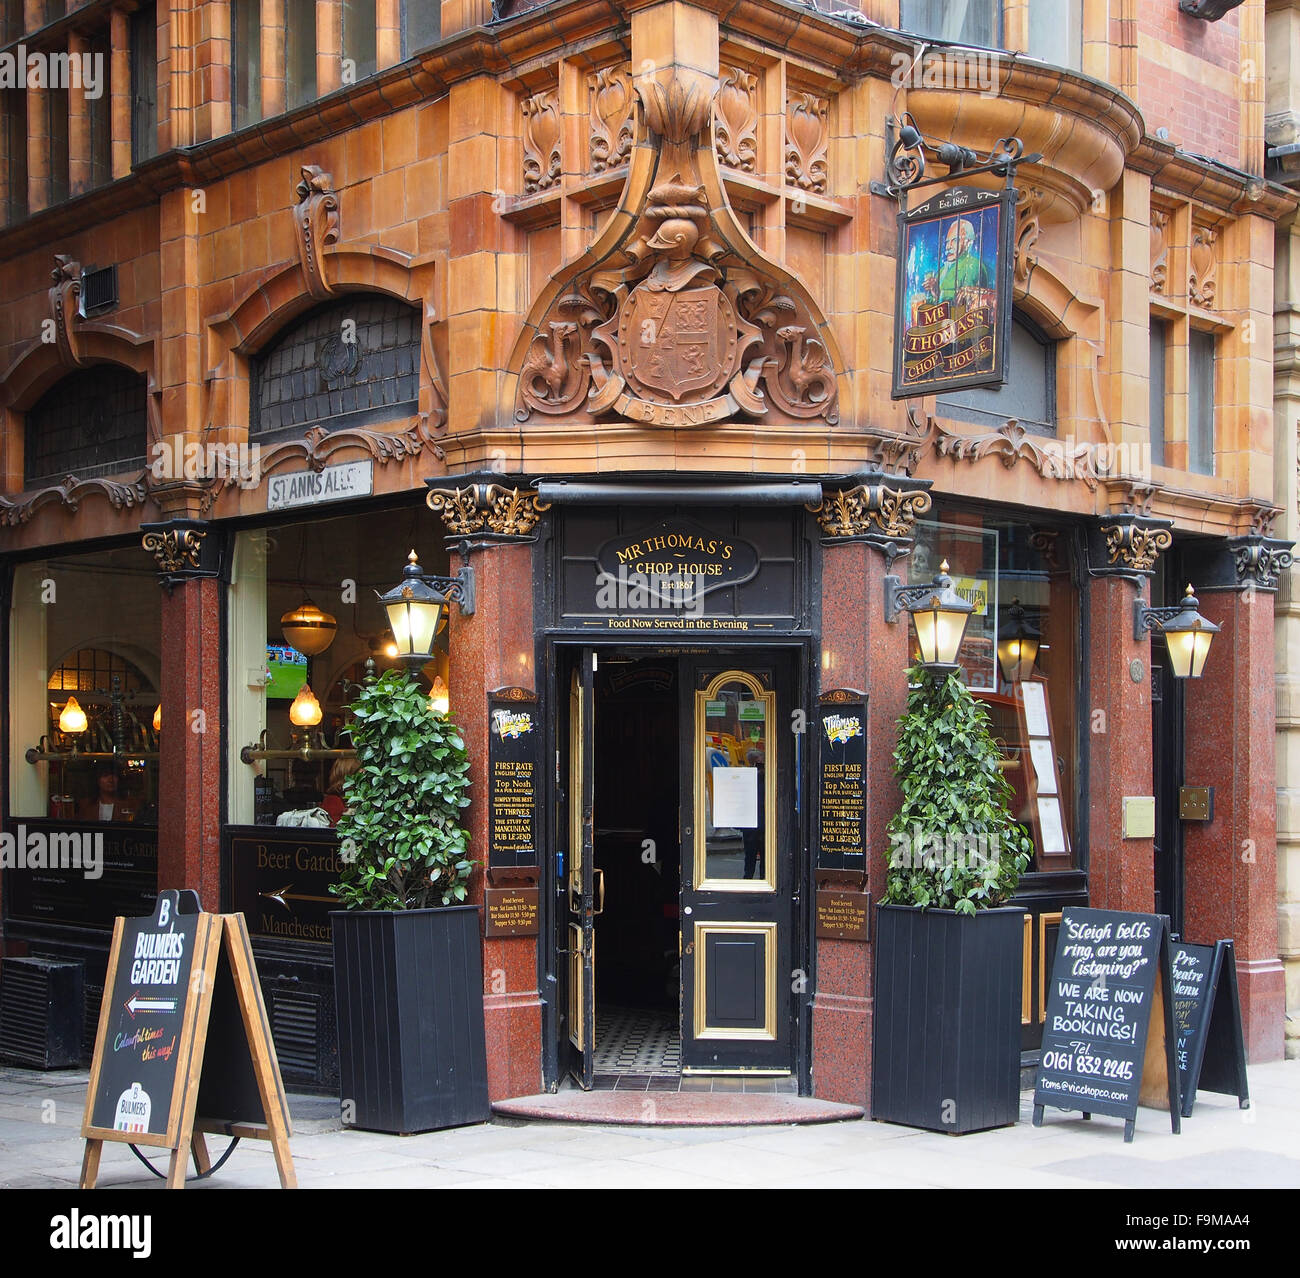 Mr. Thomas's Chop House, a public house first established in 1867, in Manchester city centre, UK. - Stock Image